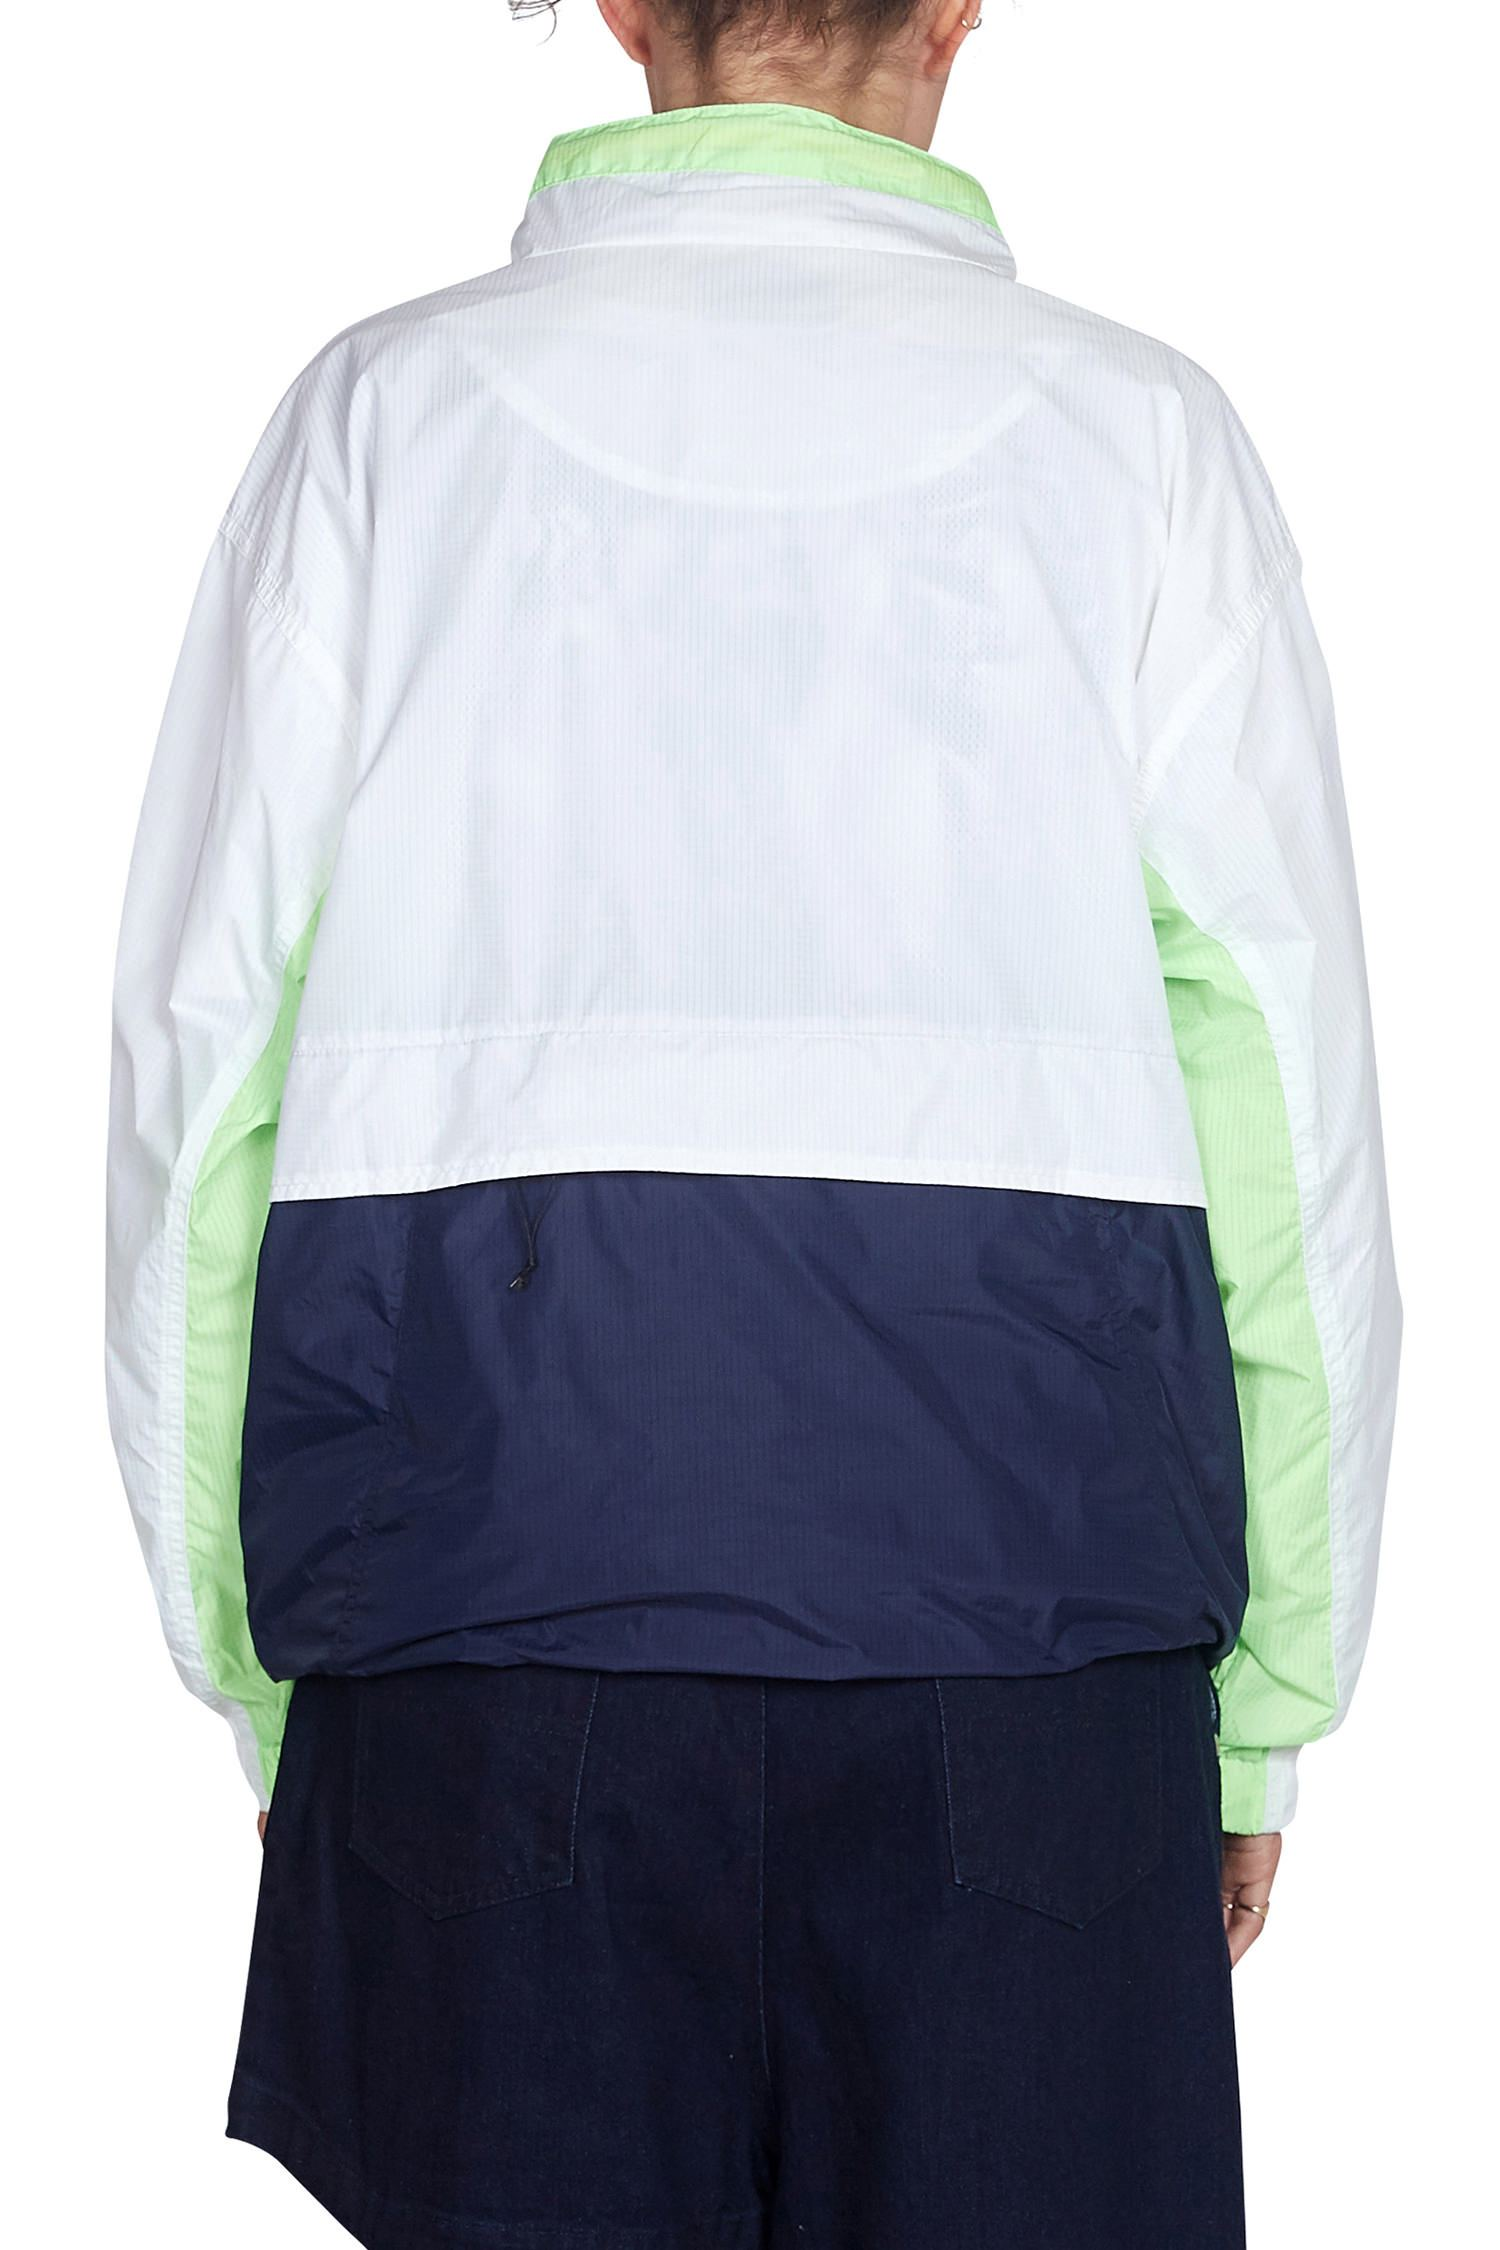 39076_TIME_FOLDS_TRACK_PULLOVER_-_white_navy_green_-_4